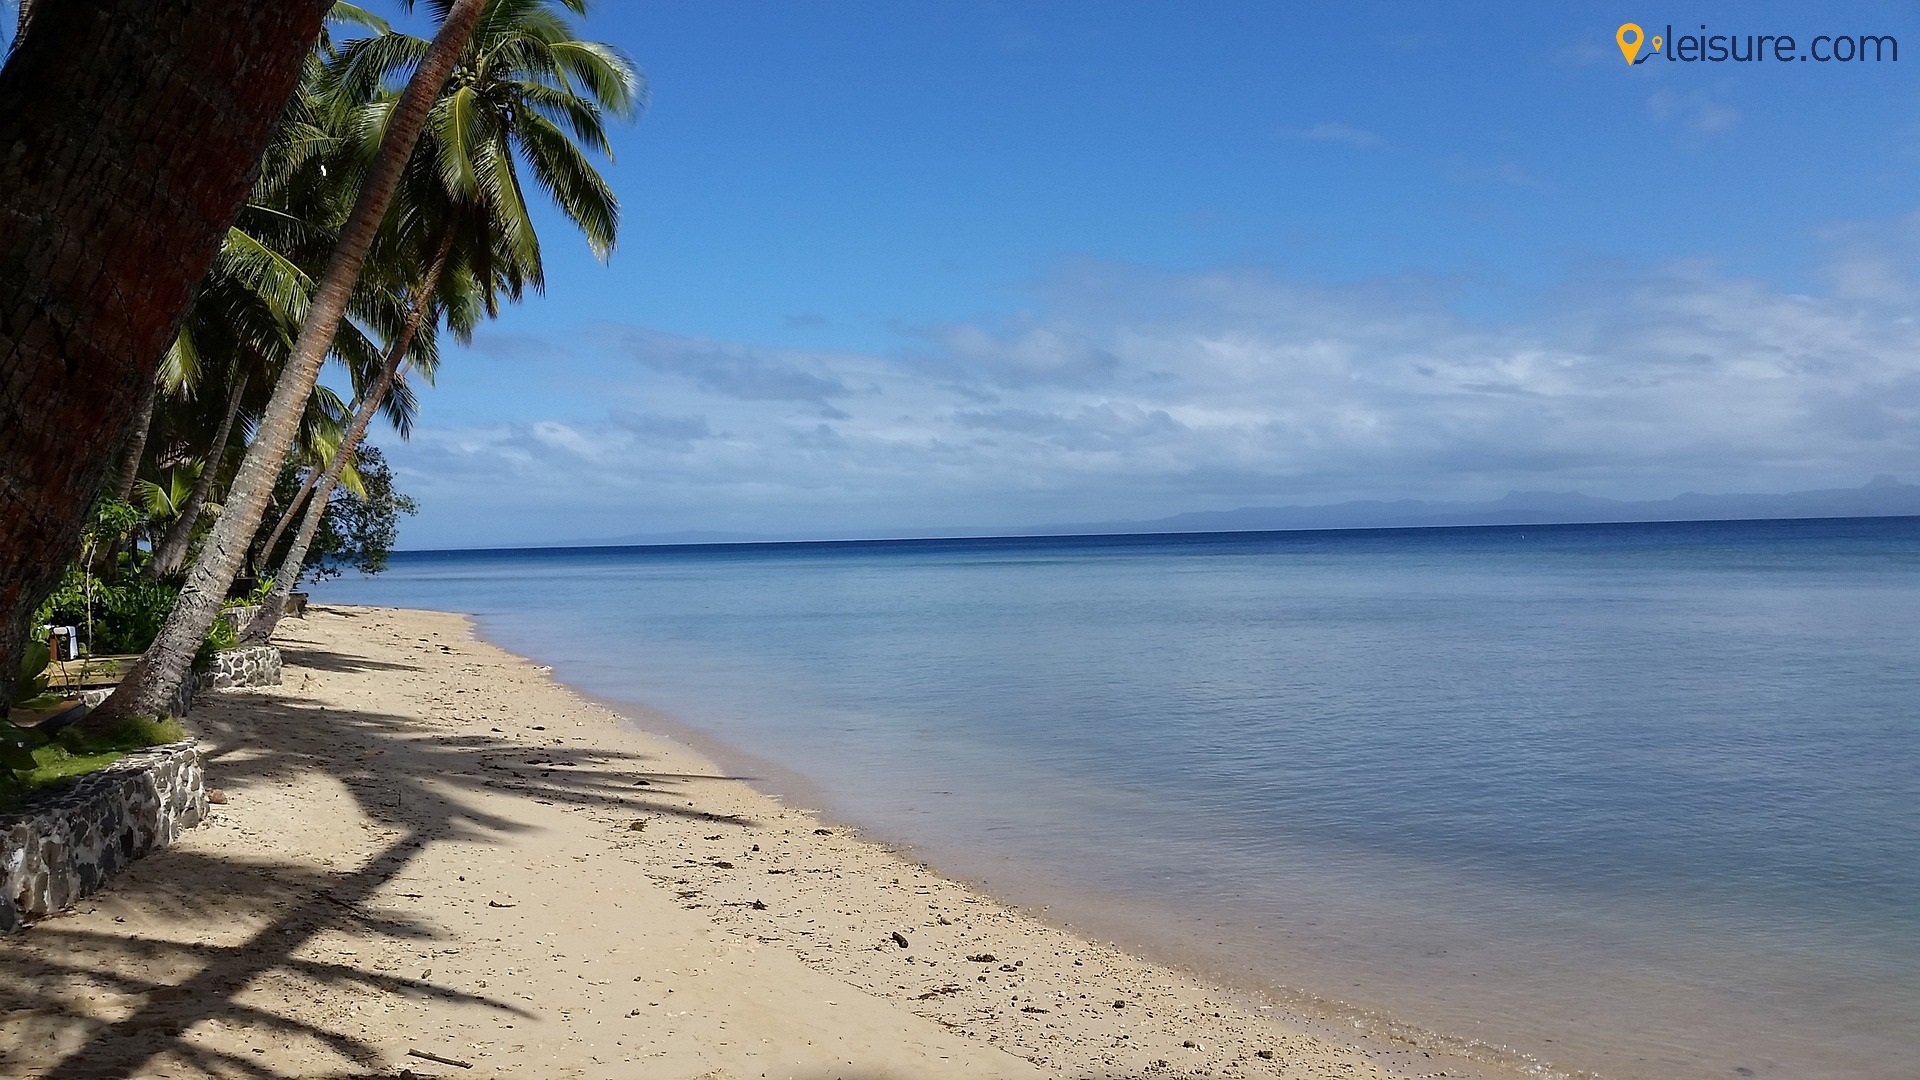 How and where to spend 10 Days in Fiji Islands?